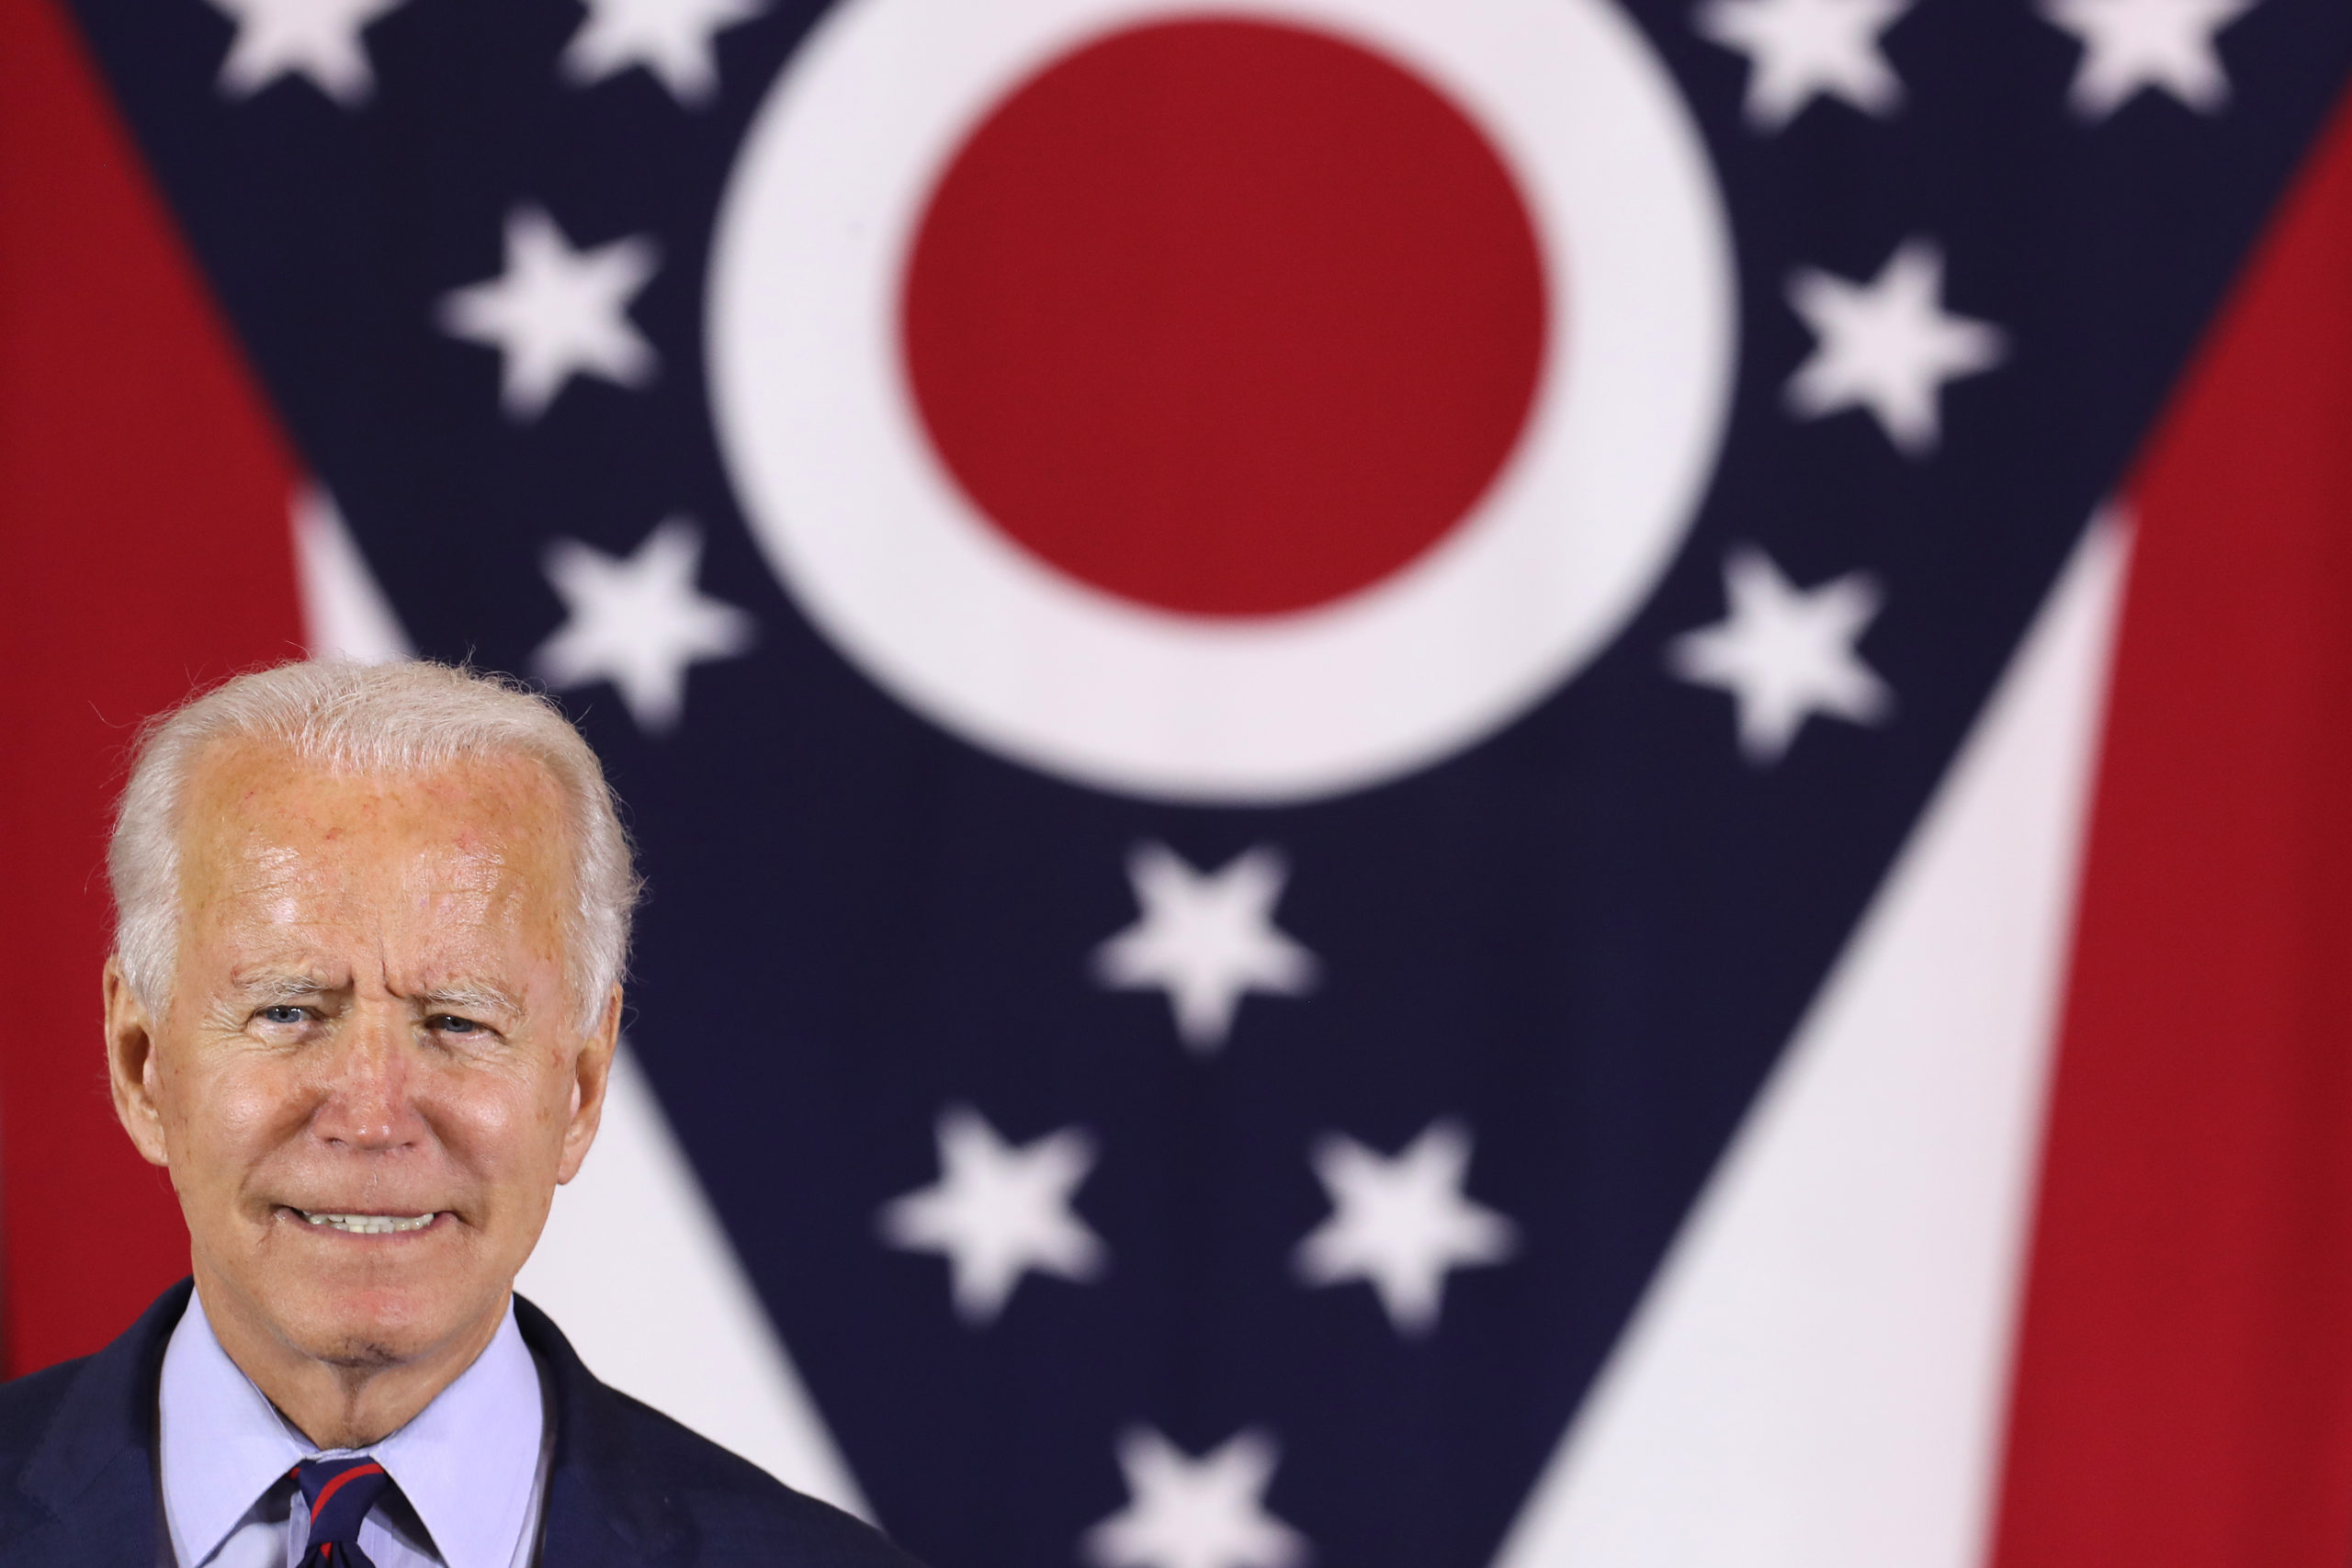 Democratic presidential nominee Joe Biden makes remarks during a voter-mobilization event at the Cincinnati Museum Center at Union Terminal October 12, 2020 in Cincinnati, Ohio. (Chip Somodevilla/Getty Images)